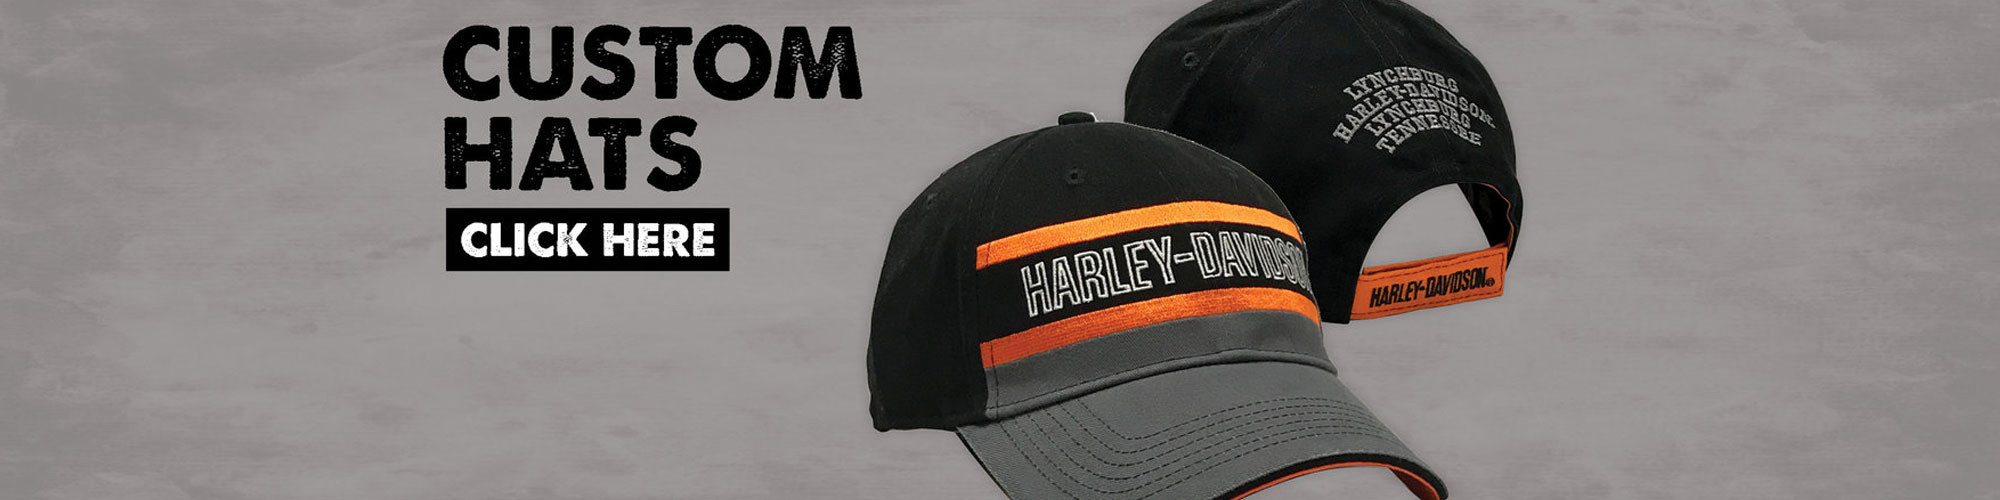 Shop Online for Custom Harley-Davidson Hats at Lynchburg Harley-Davidson